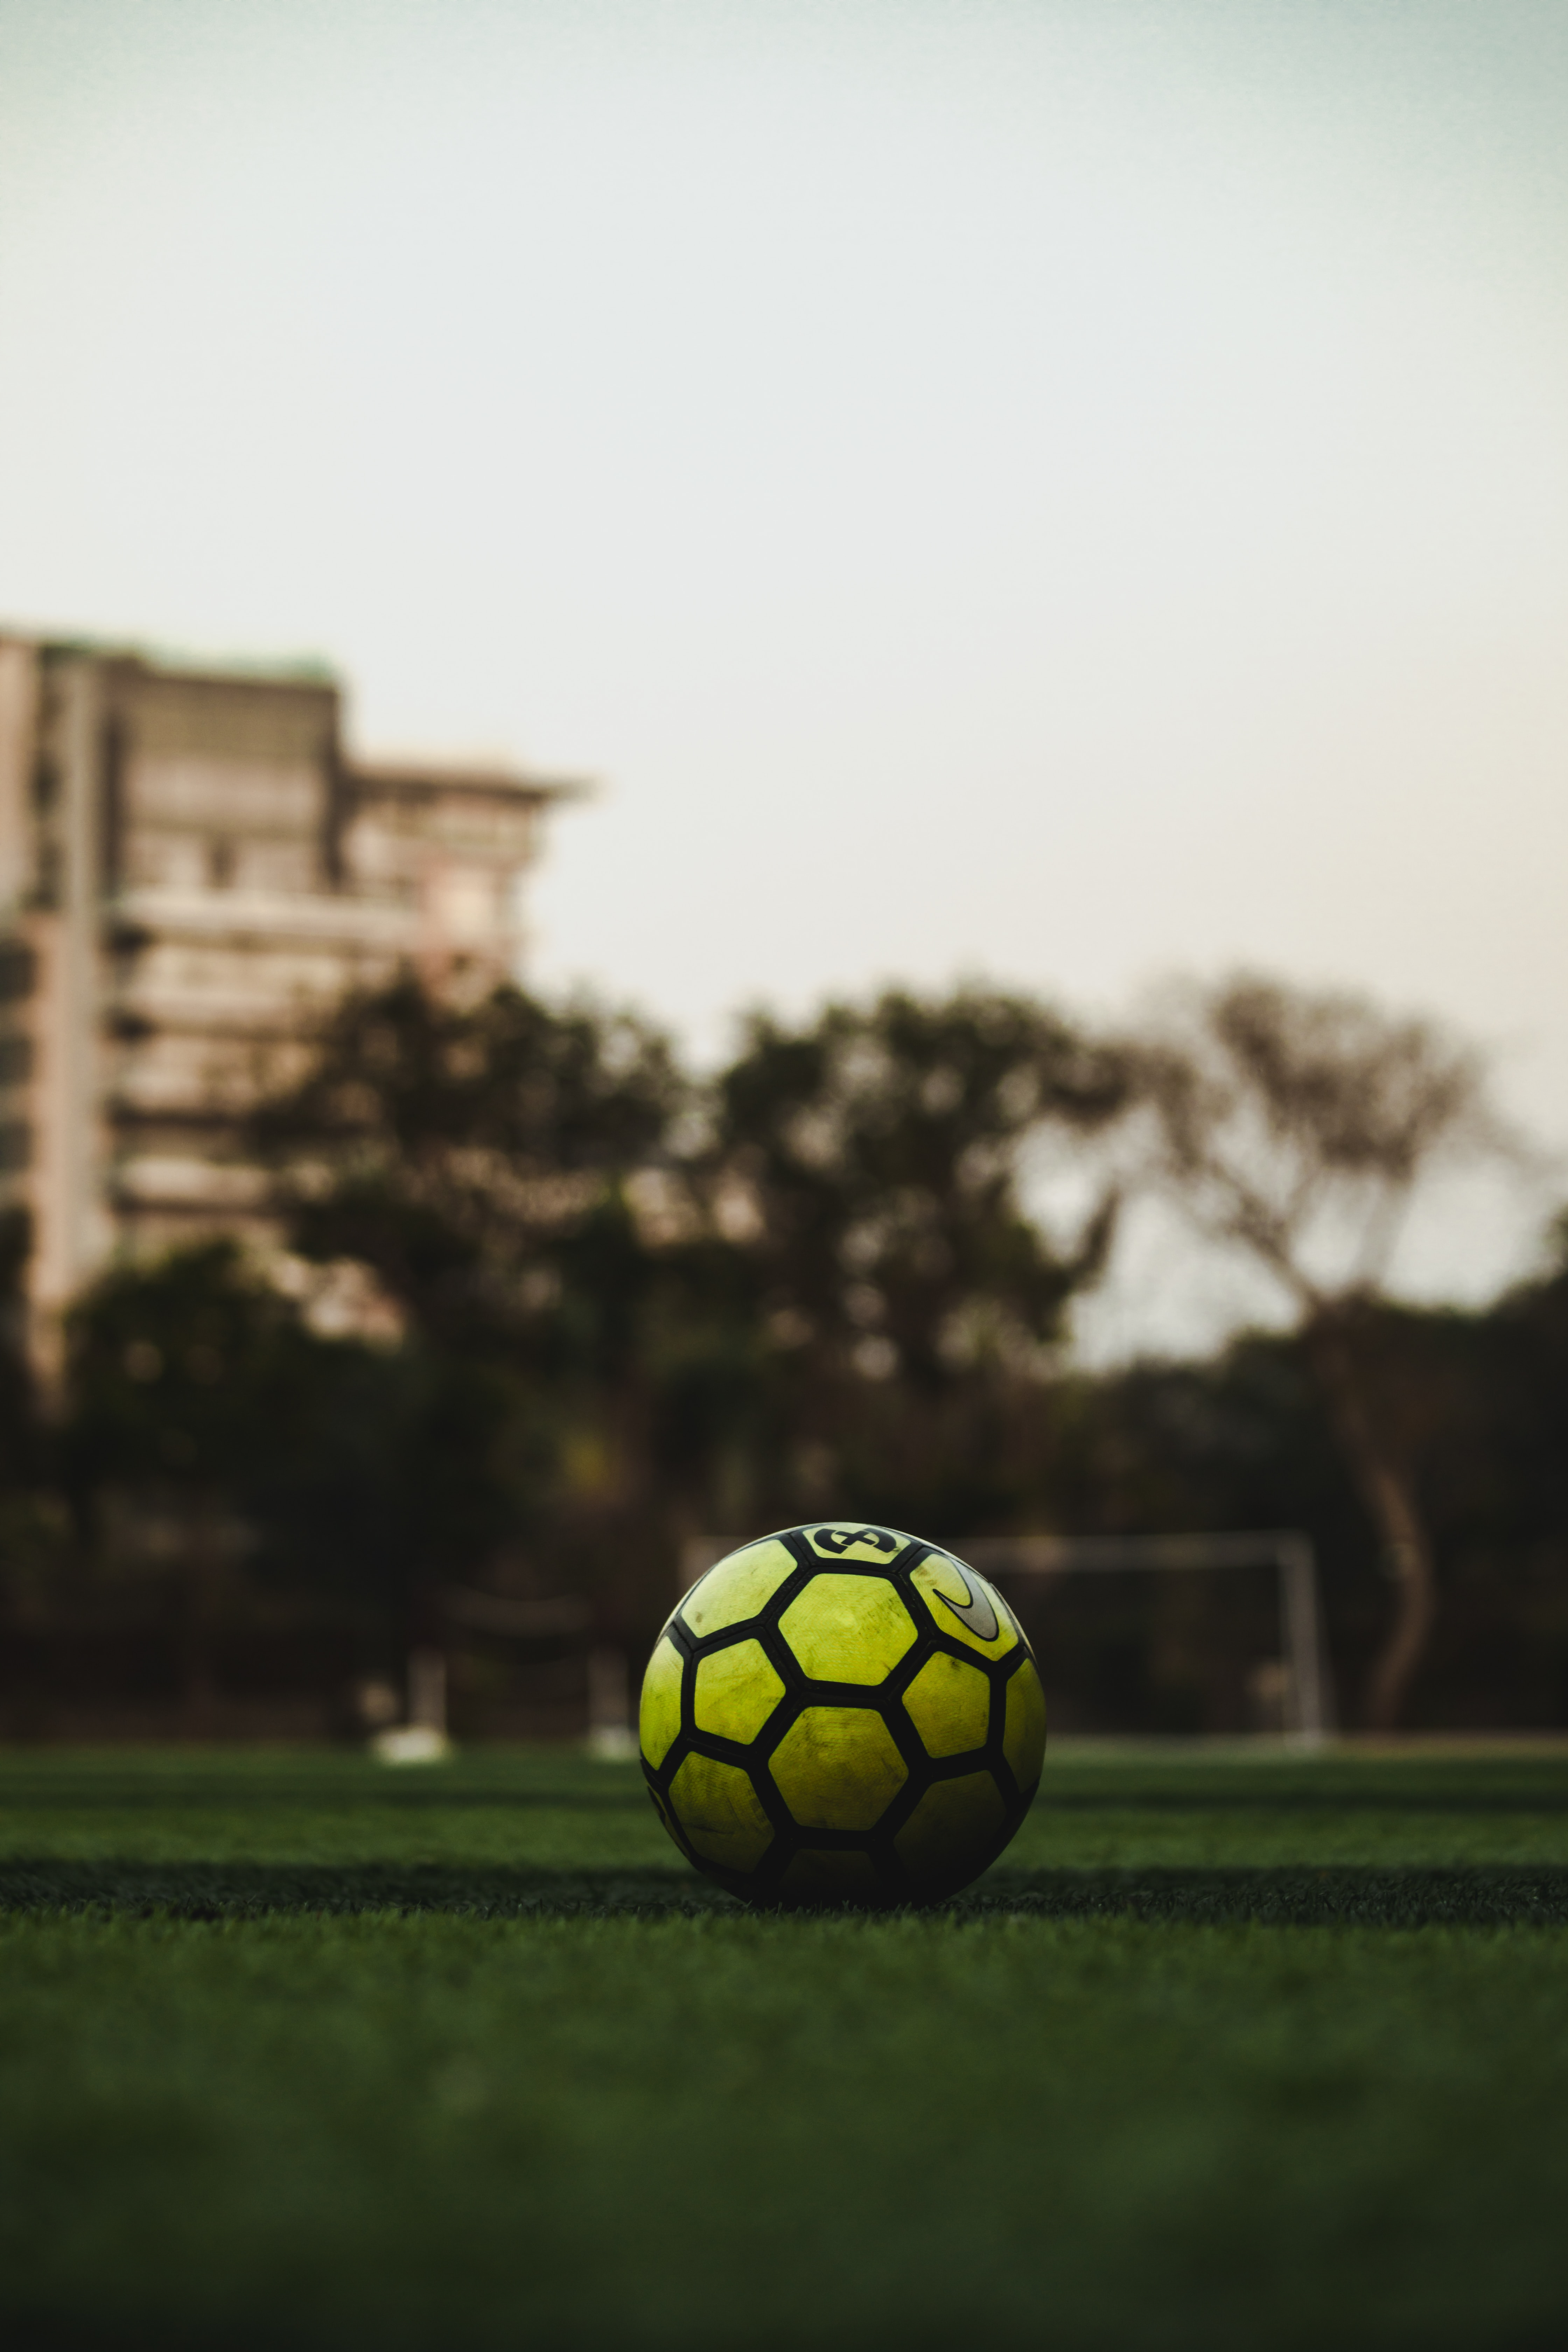 144833 download wallpaper Football, Sports, Grass, Ball, Lawn, Soccer Ball screensavers and pictures for free